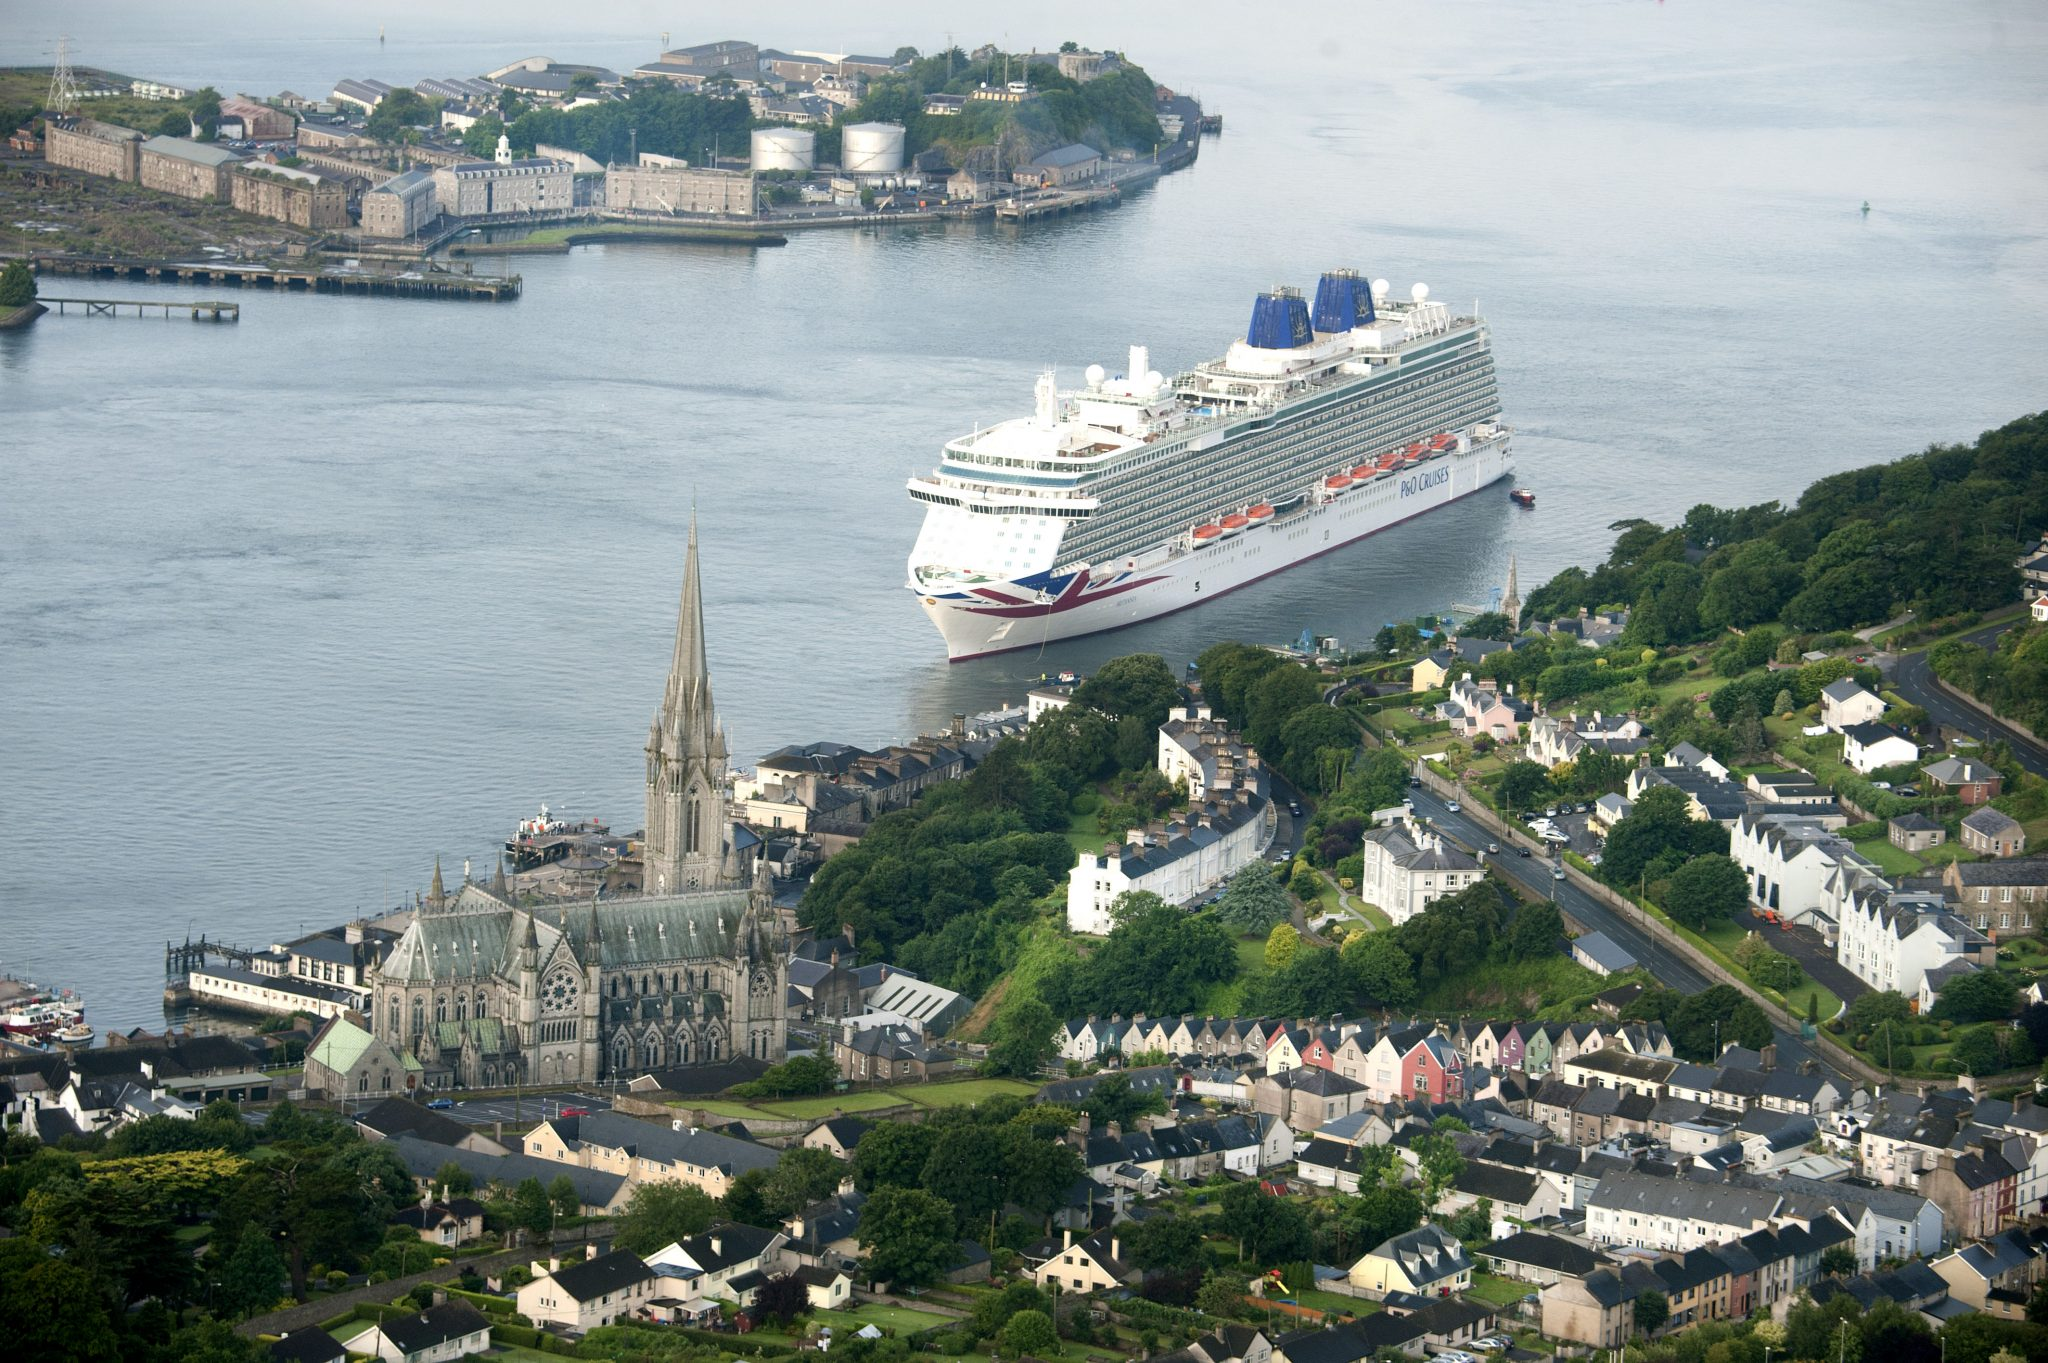 Brilliance Of The Seas Cruise Ship Arrives in Cobh - Ring of Cork